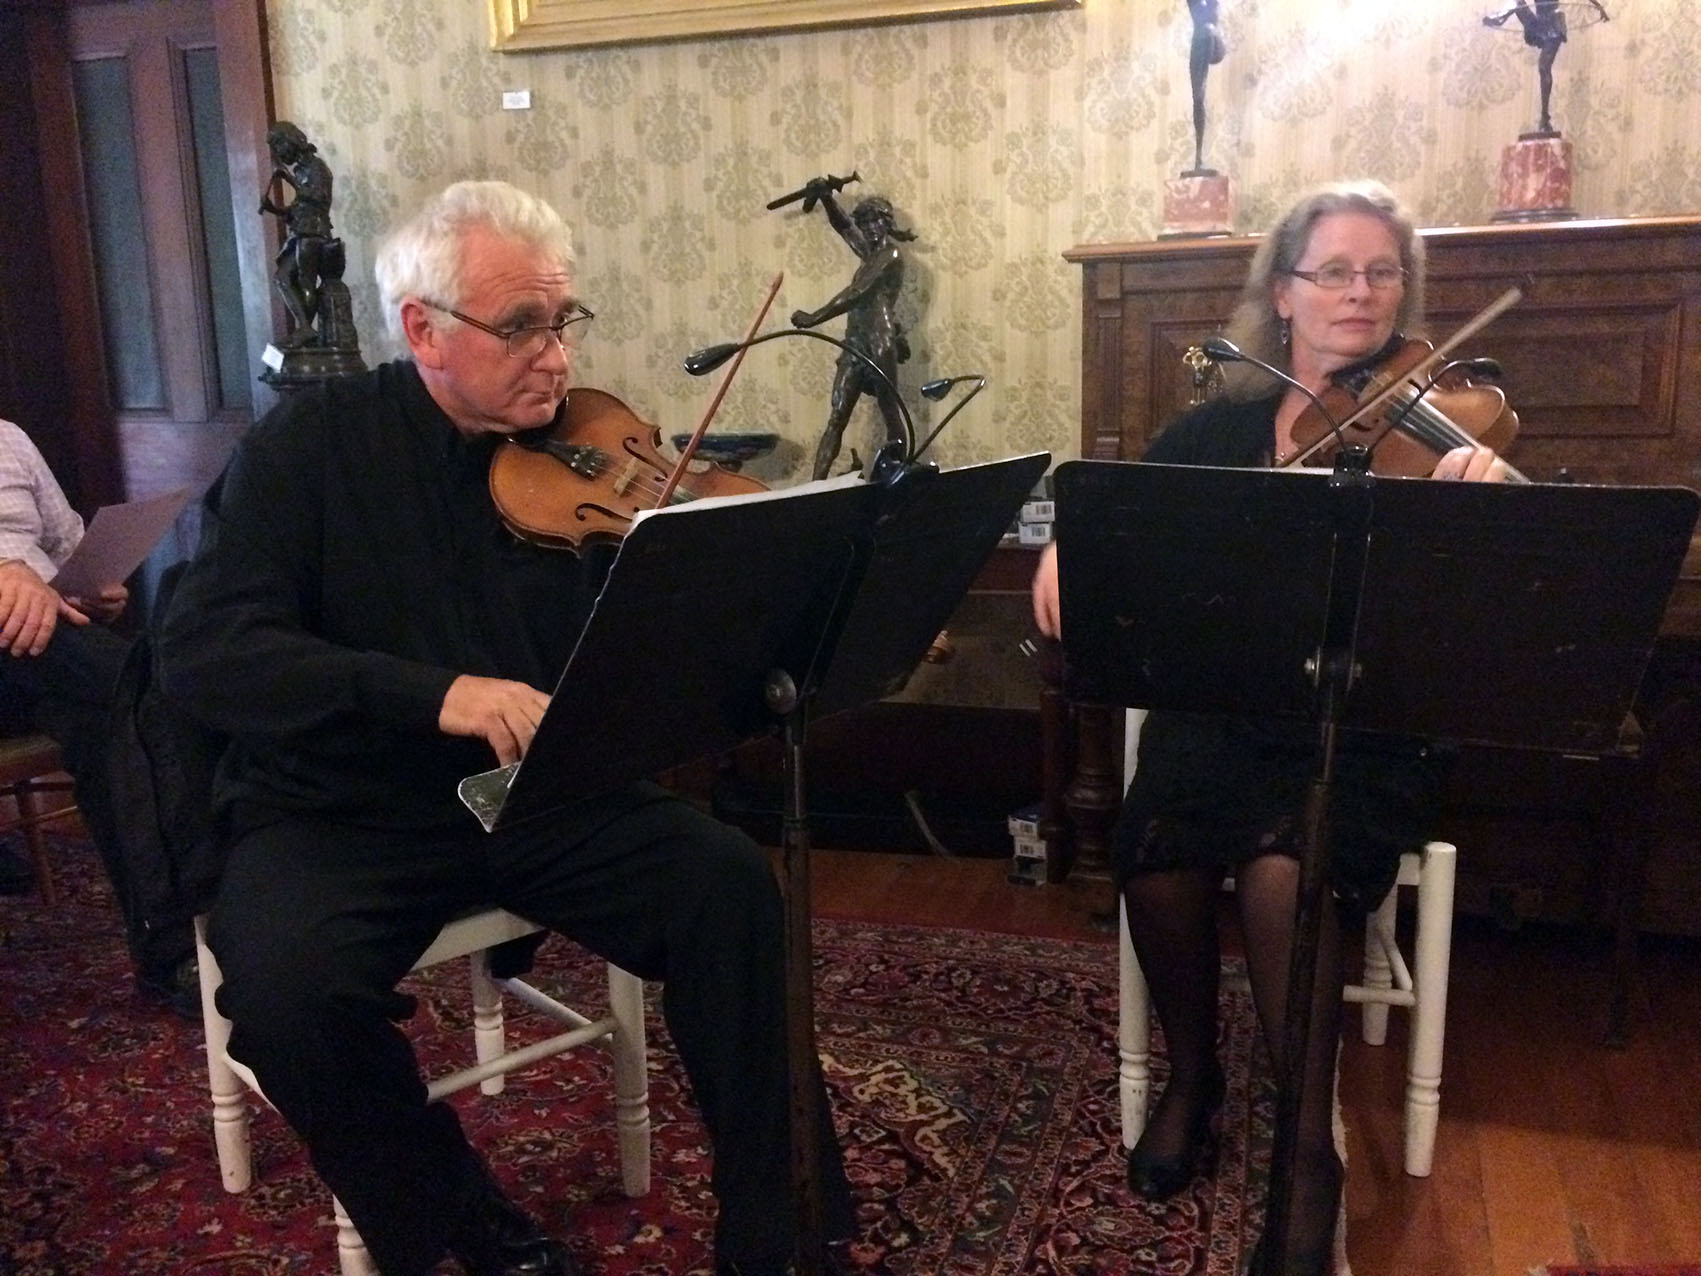 Two members of the string quartet for Bonshaw - Peter Read and Wendy Oakes